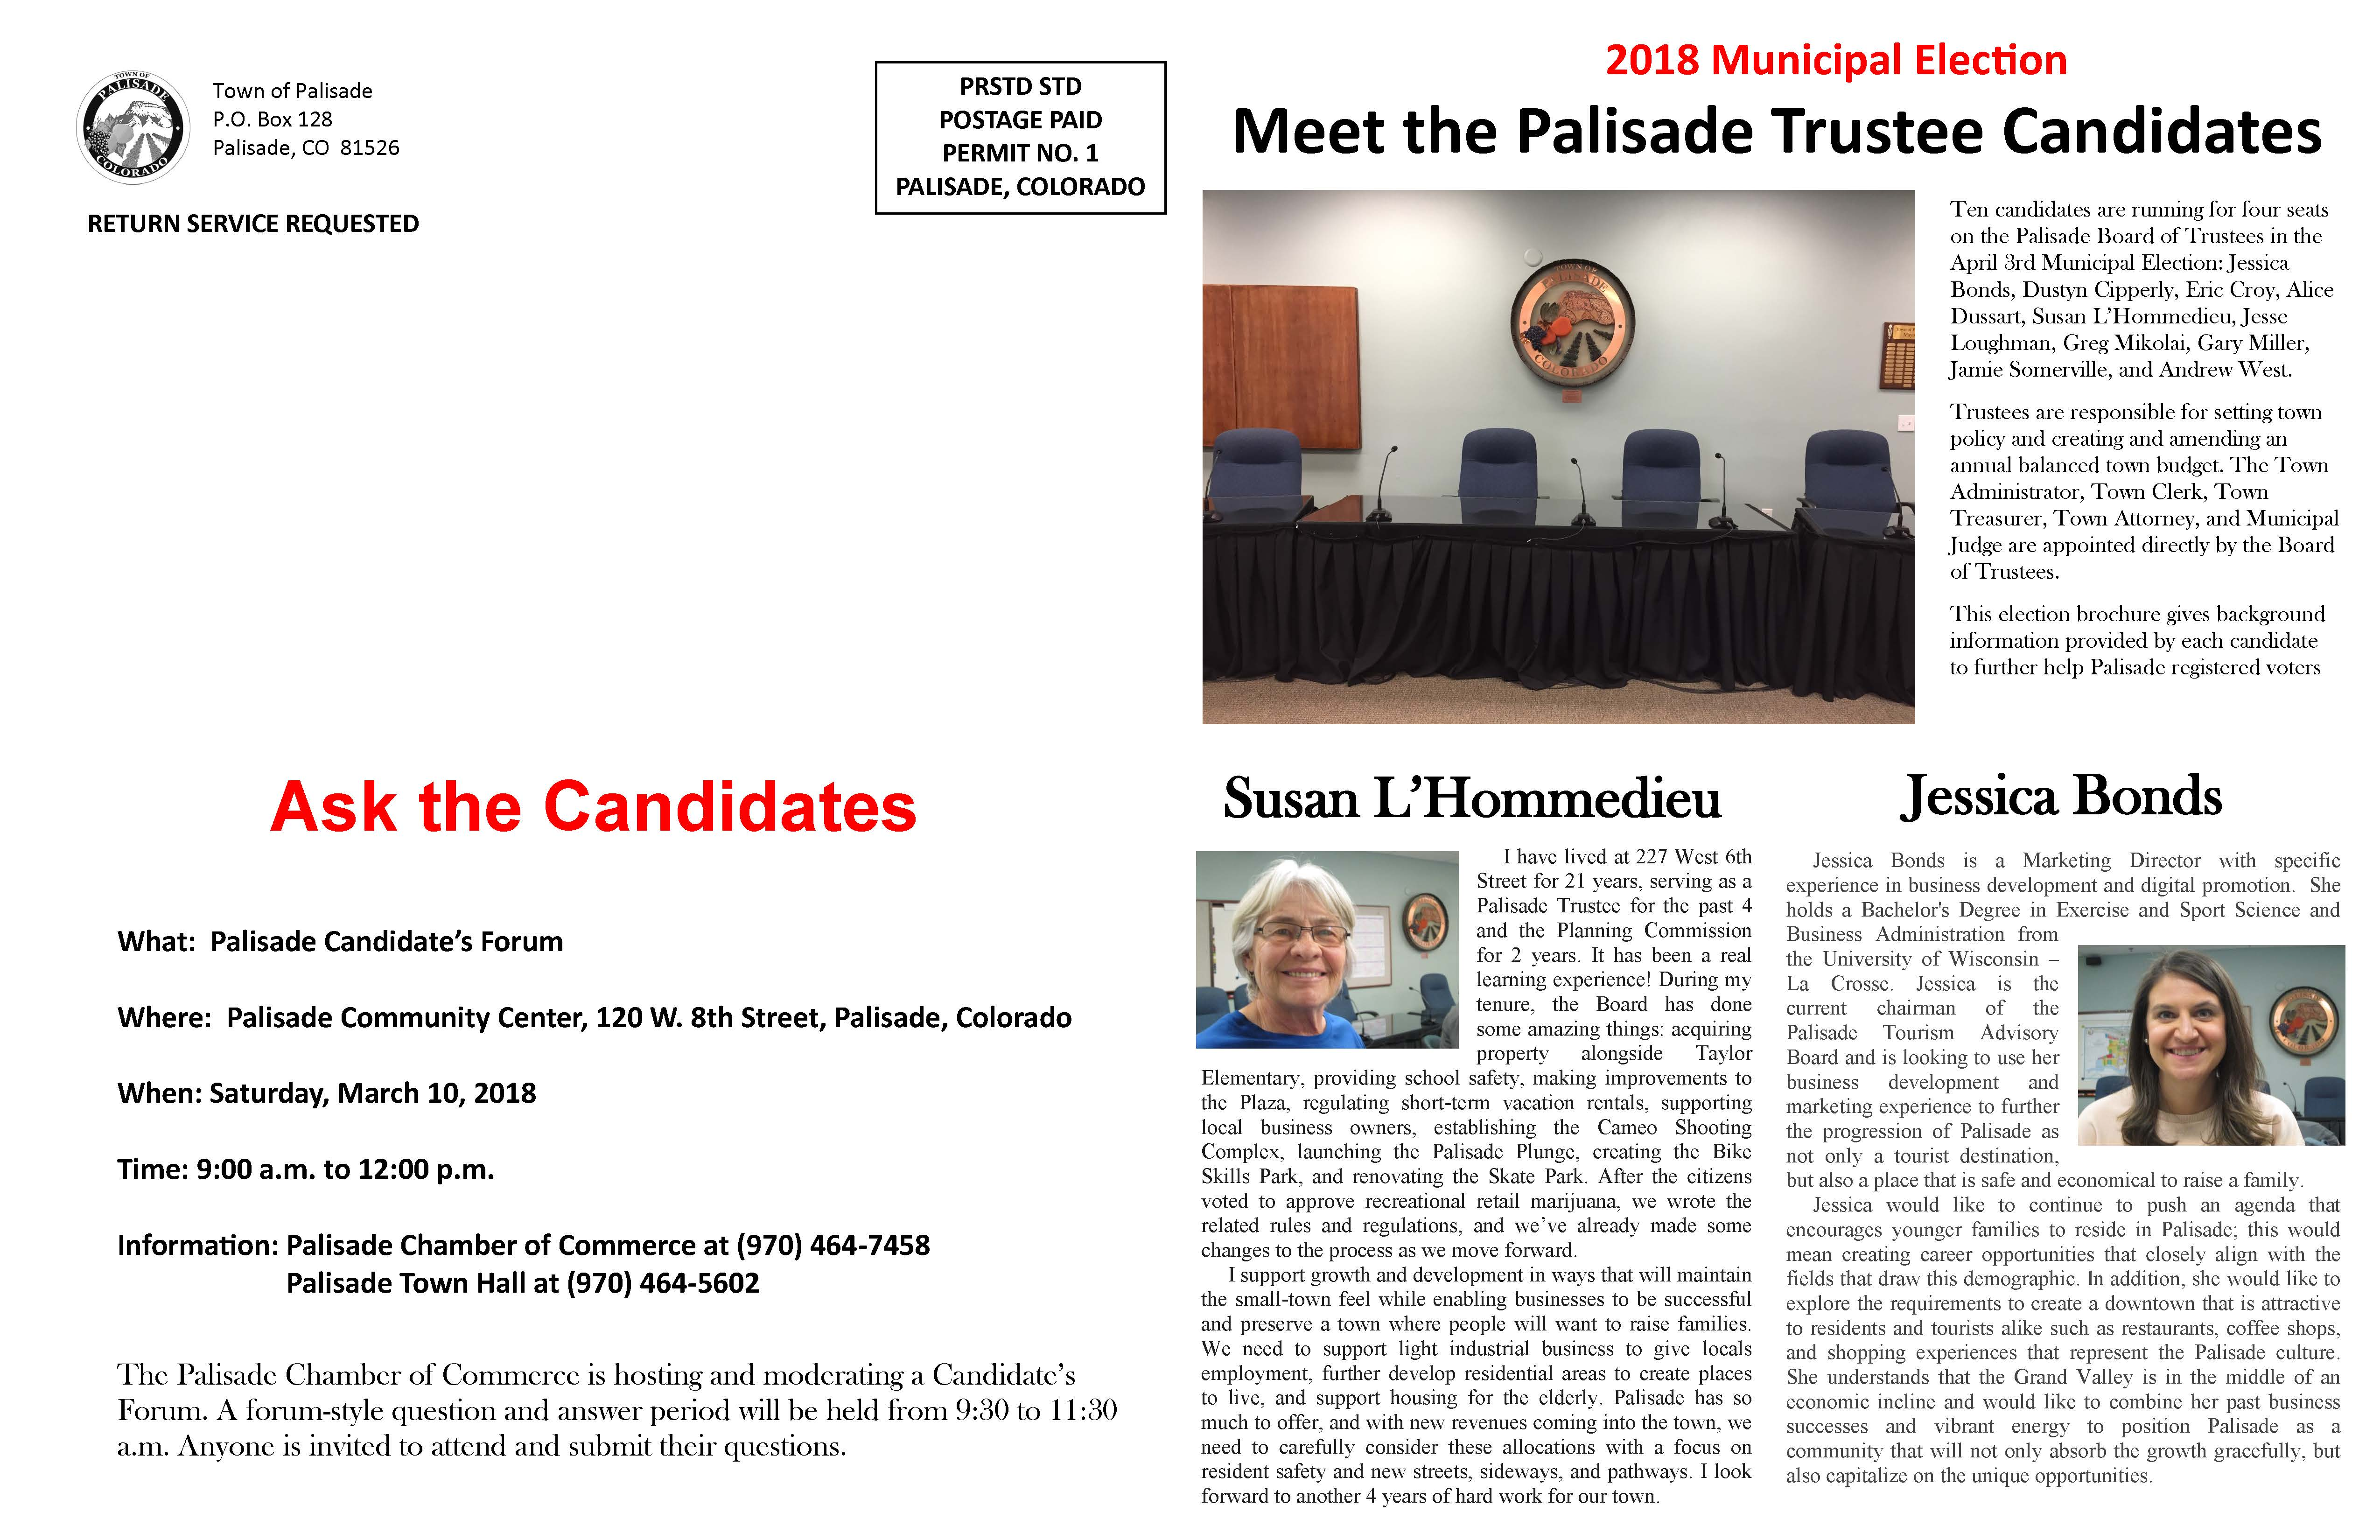 Election Brochure Righside Up Page 1